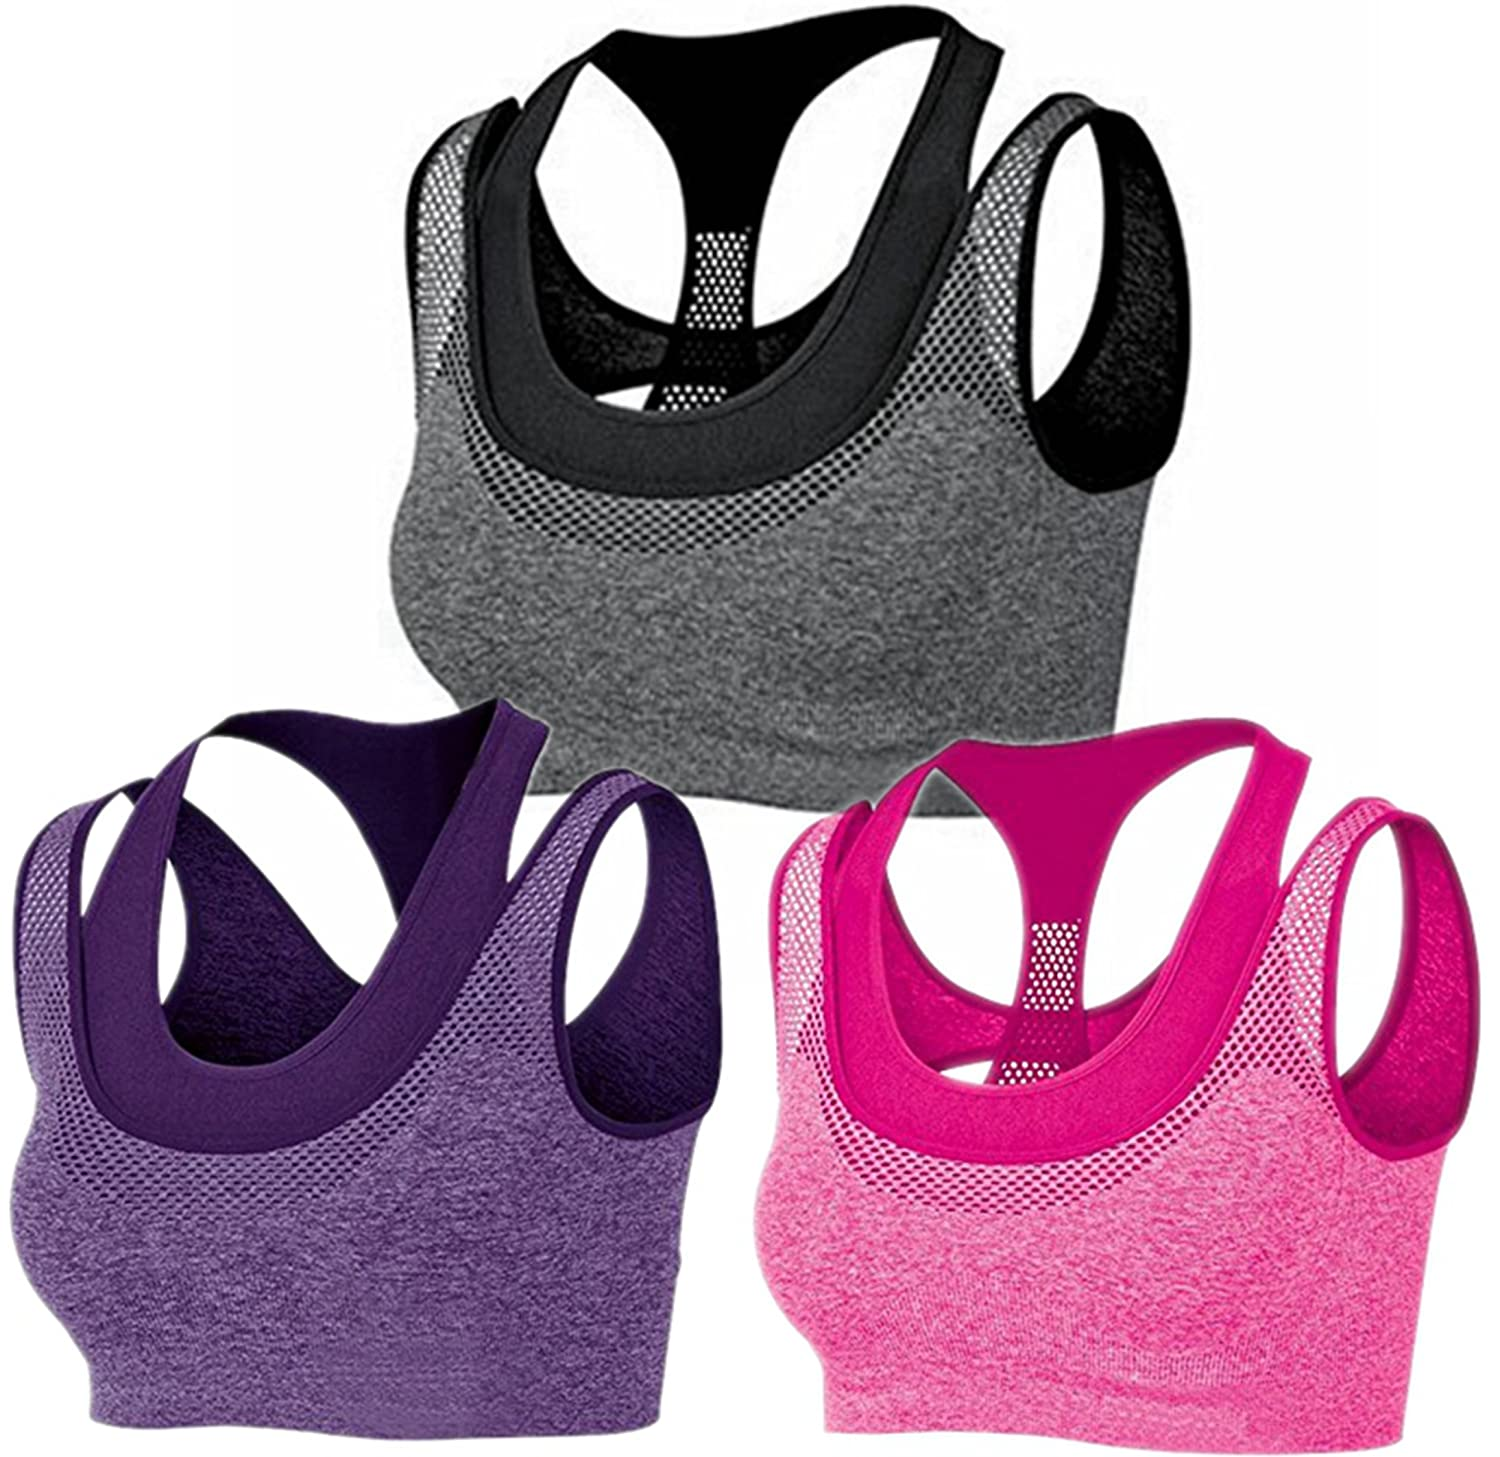 635e810562866 lovely BRABIC Women s Double Layer Sports Bras Top Padded High Impact  Sports Bra Pack of 3